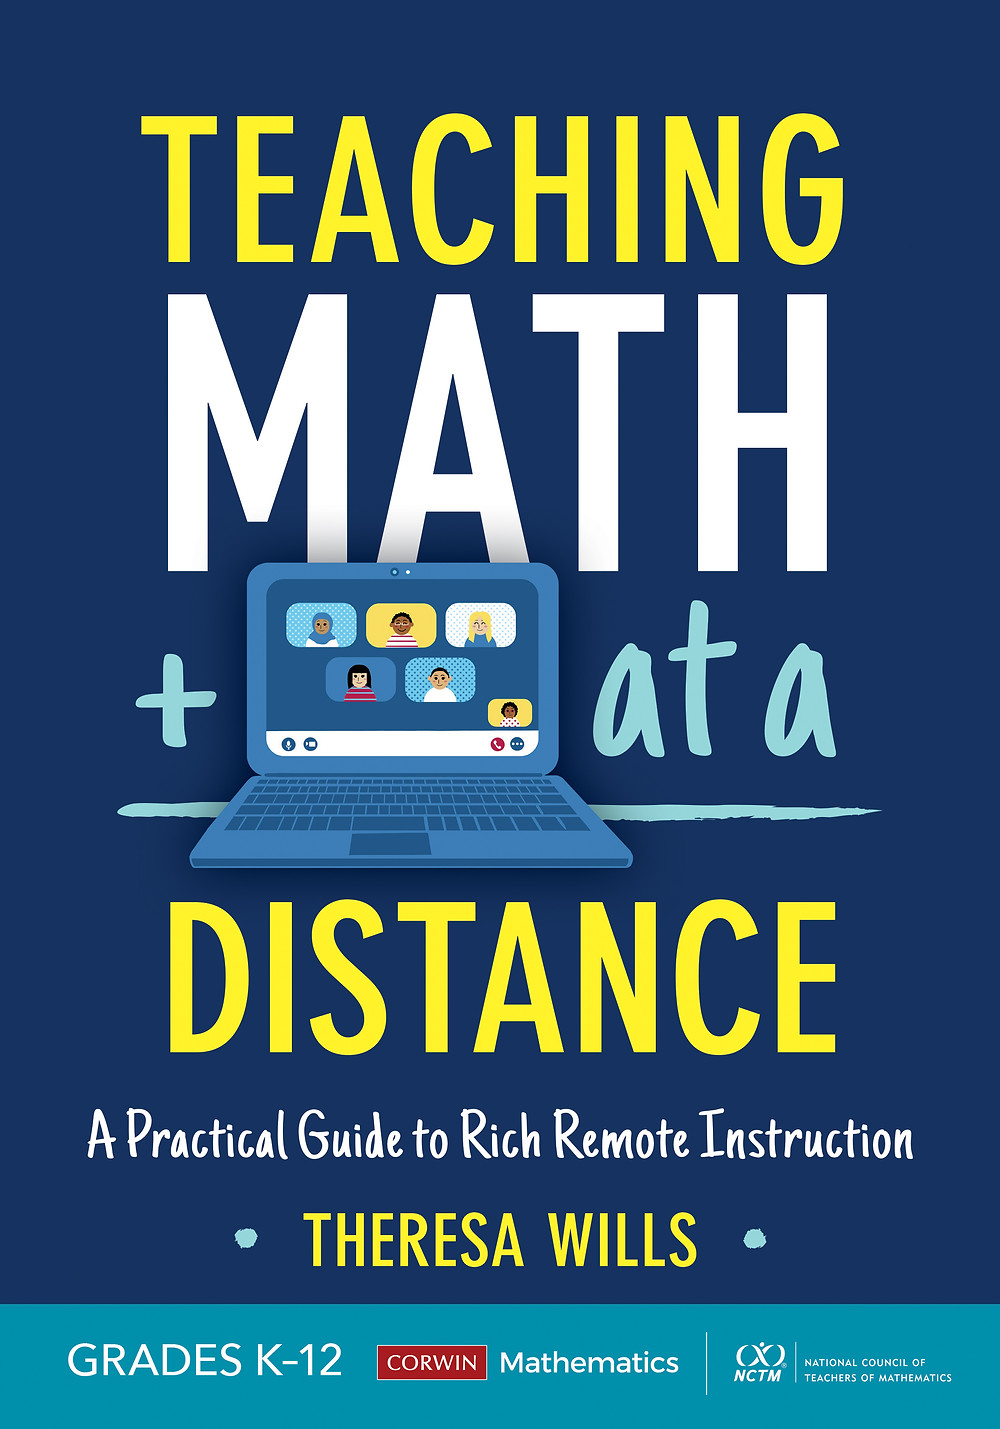 Picture of the Book Teaching Math At a Distance by Theresa Wills